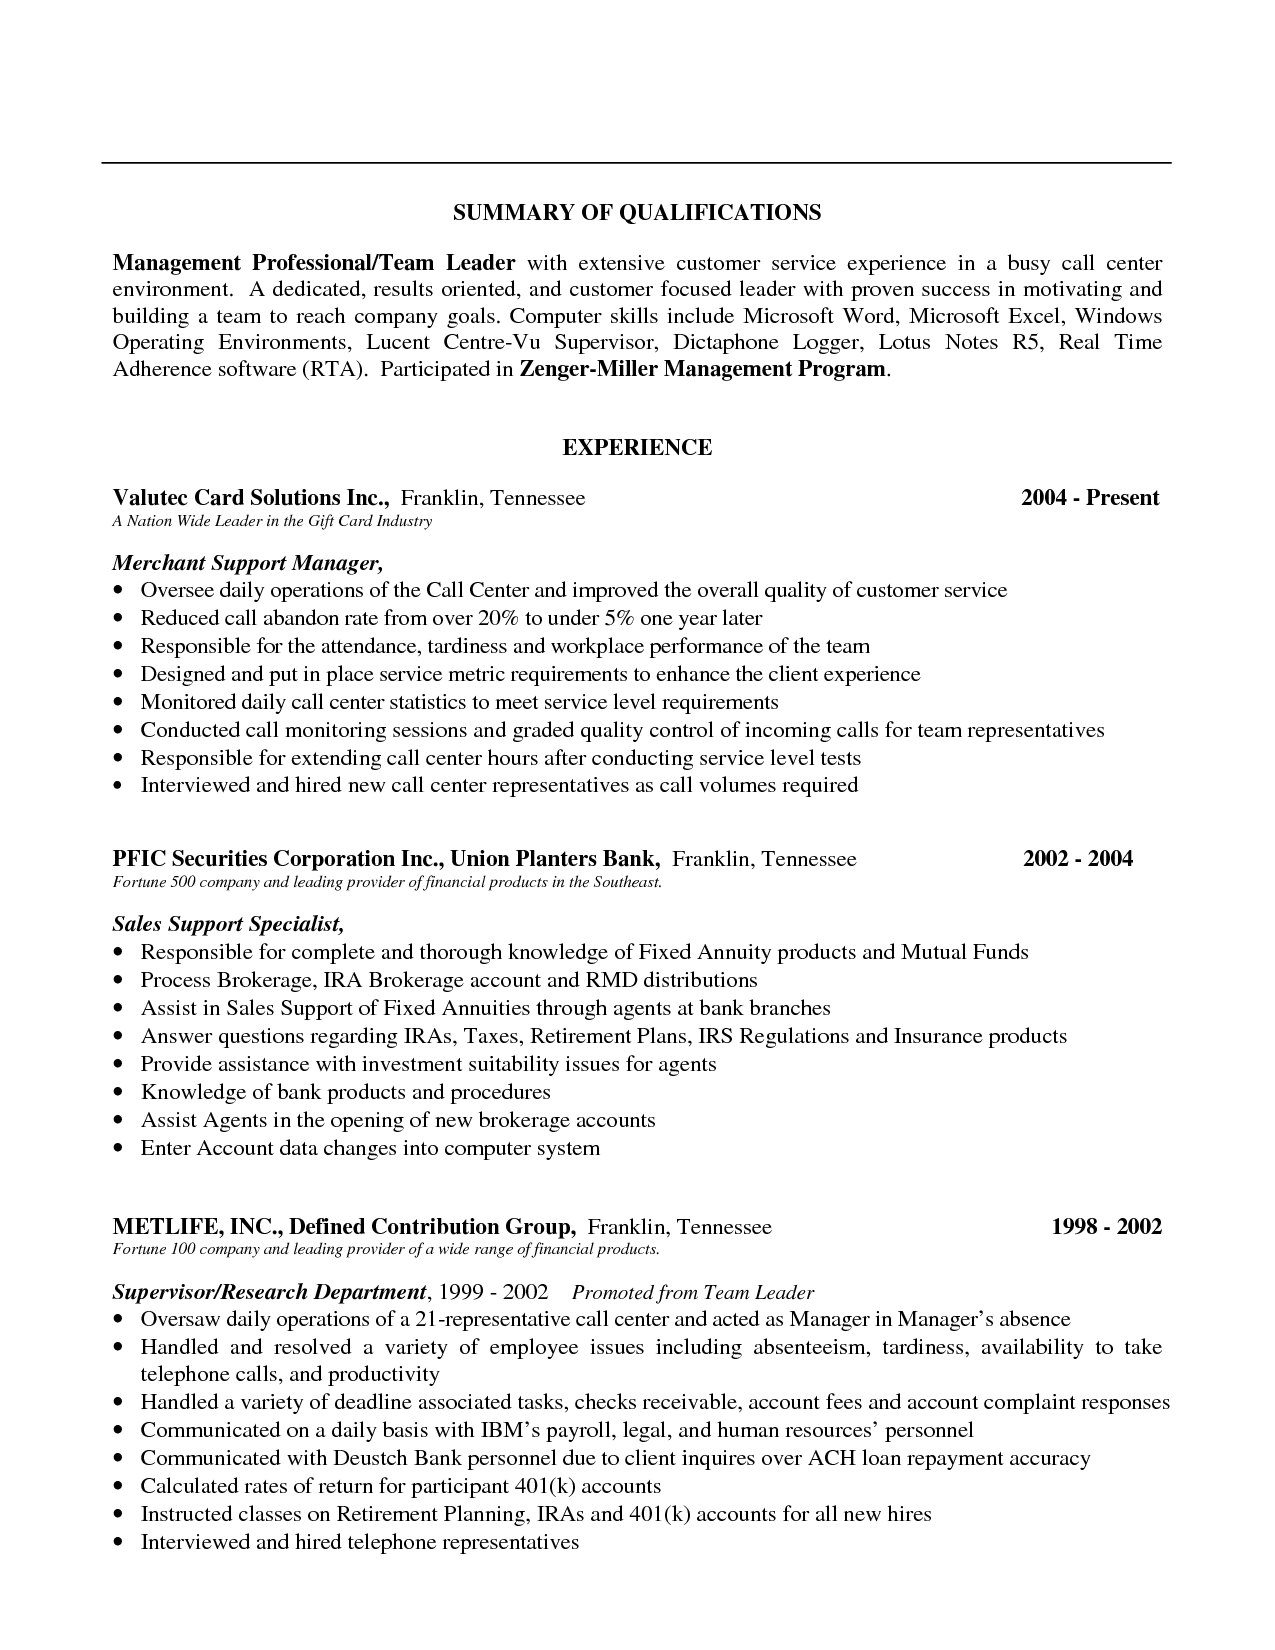 Sample Resume Summary Doc Sample Resumes Summary Qualifications Buyer Resume Statement